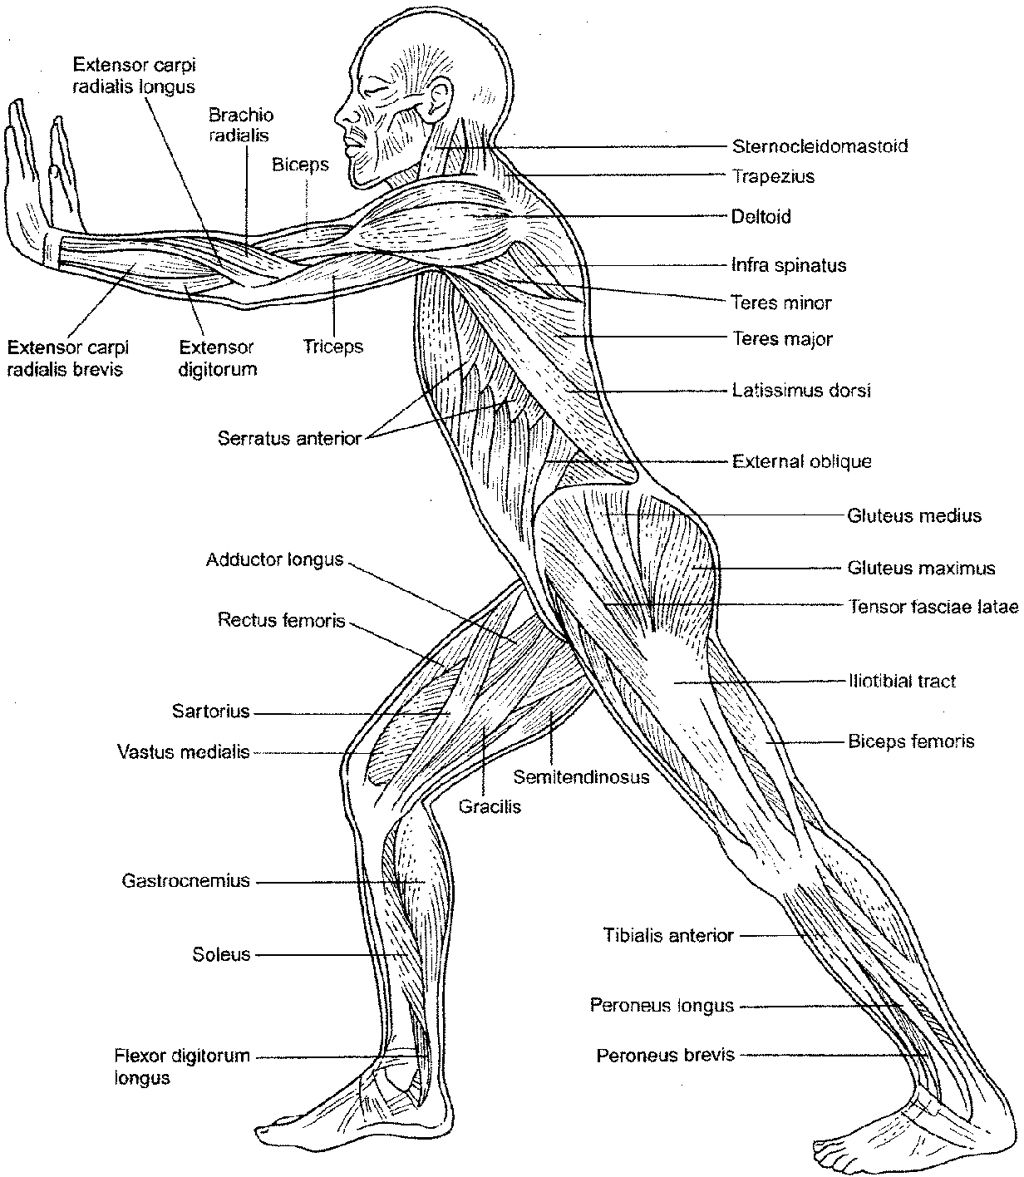 0199210896 Muscle 3 Jpg 1024 1177 Anatomy Coloring Book Anatomy And Physiology Physiology